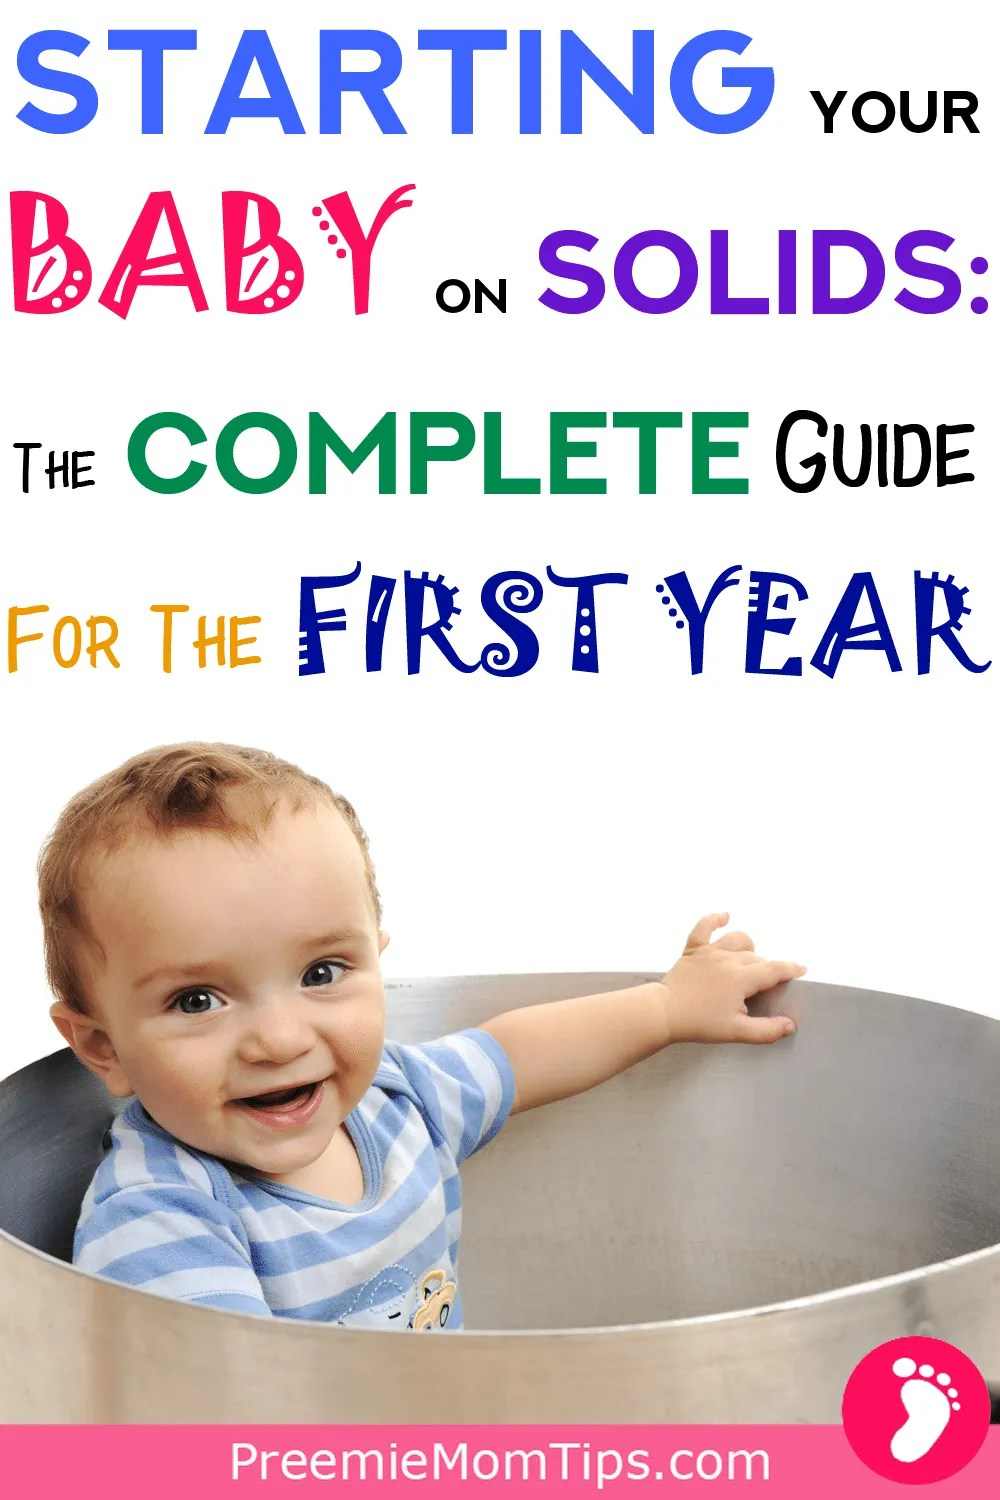 Find out all you need to know about starting baby on solids during the first year